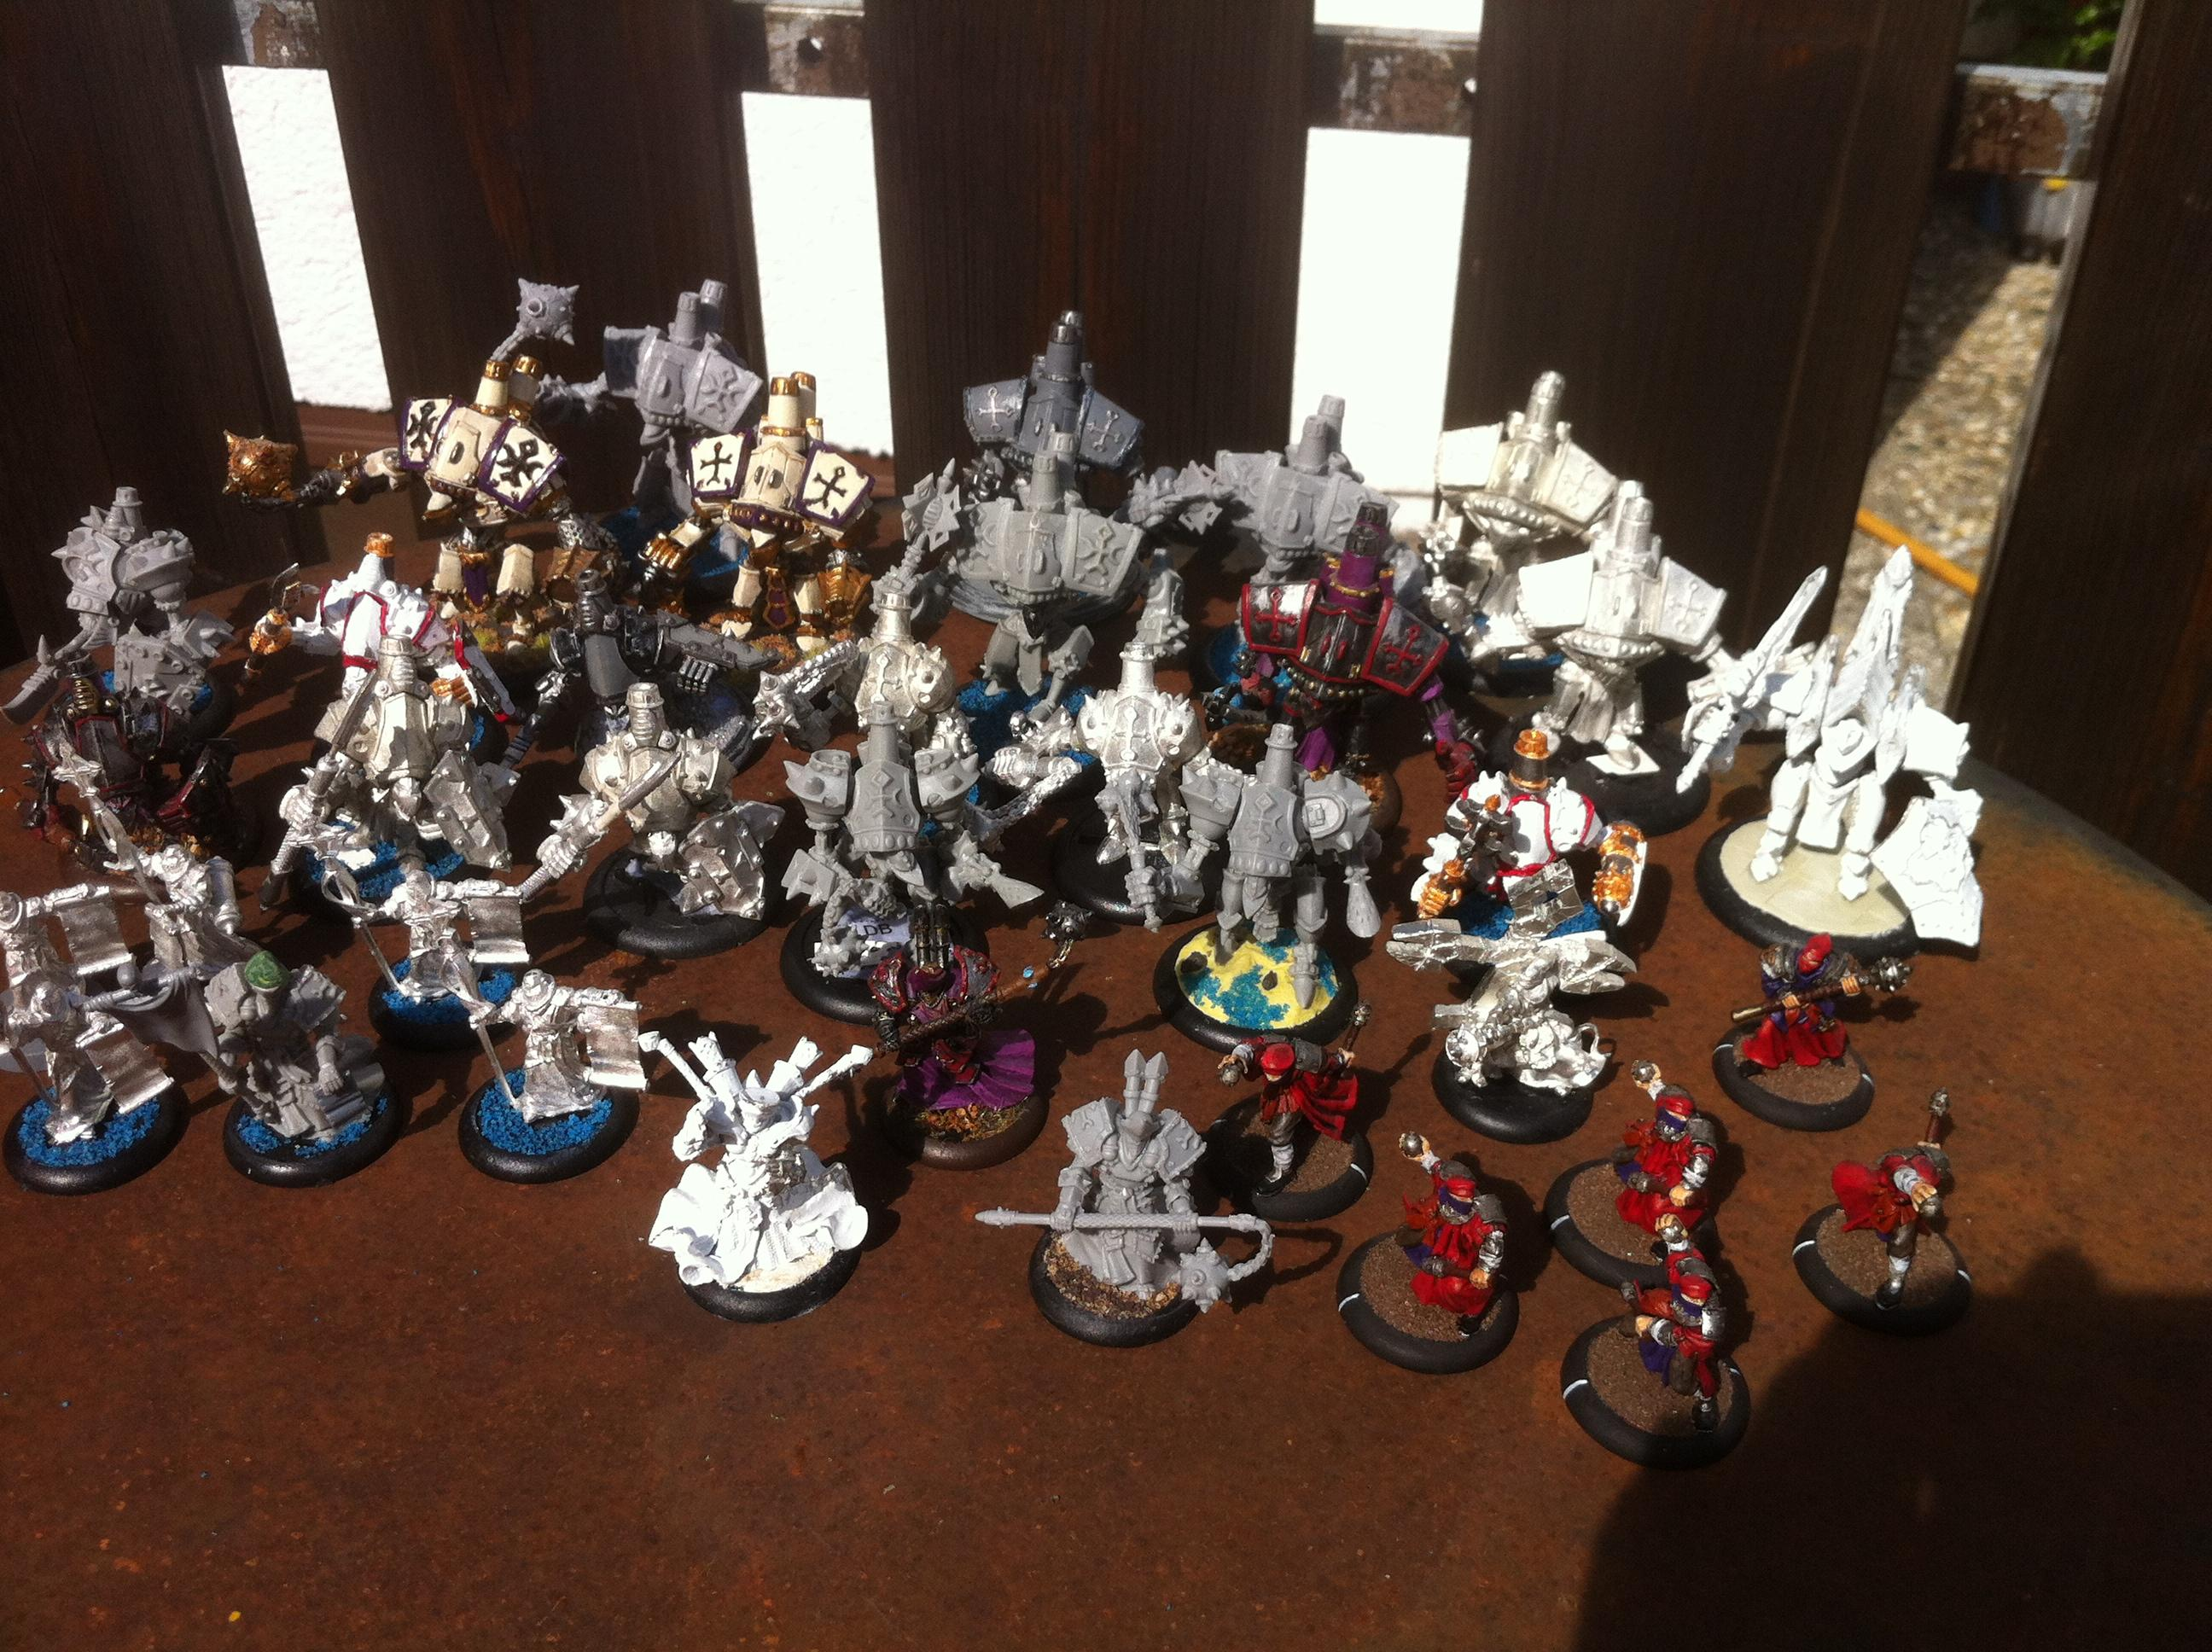 Choir, Feora, Monster, Protectorate Of Menoth, Protectoriat, Scratch Build, Warcaster, Warjack, Warmachine